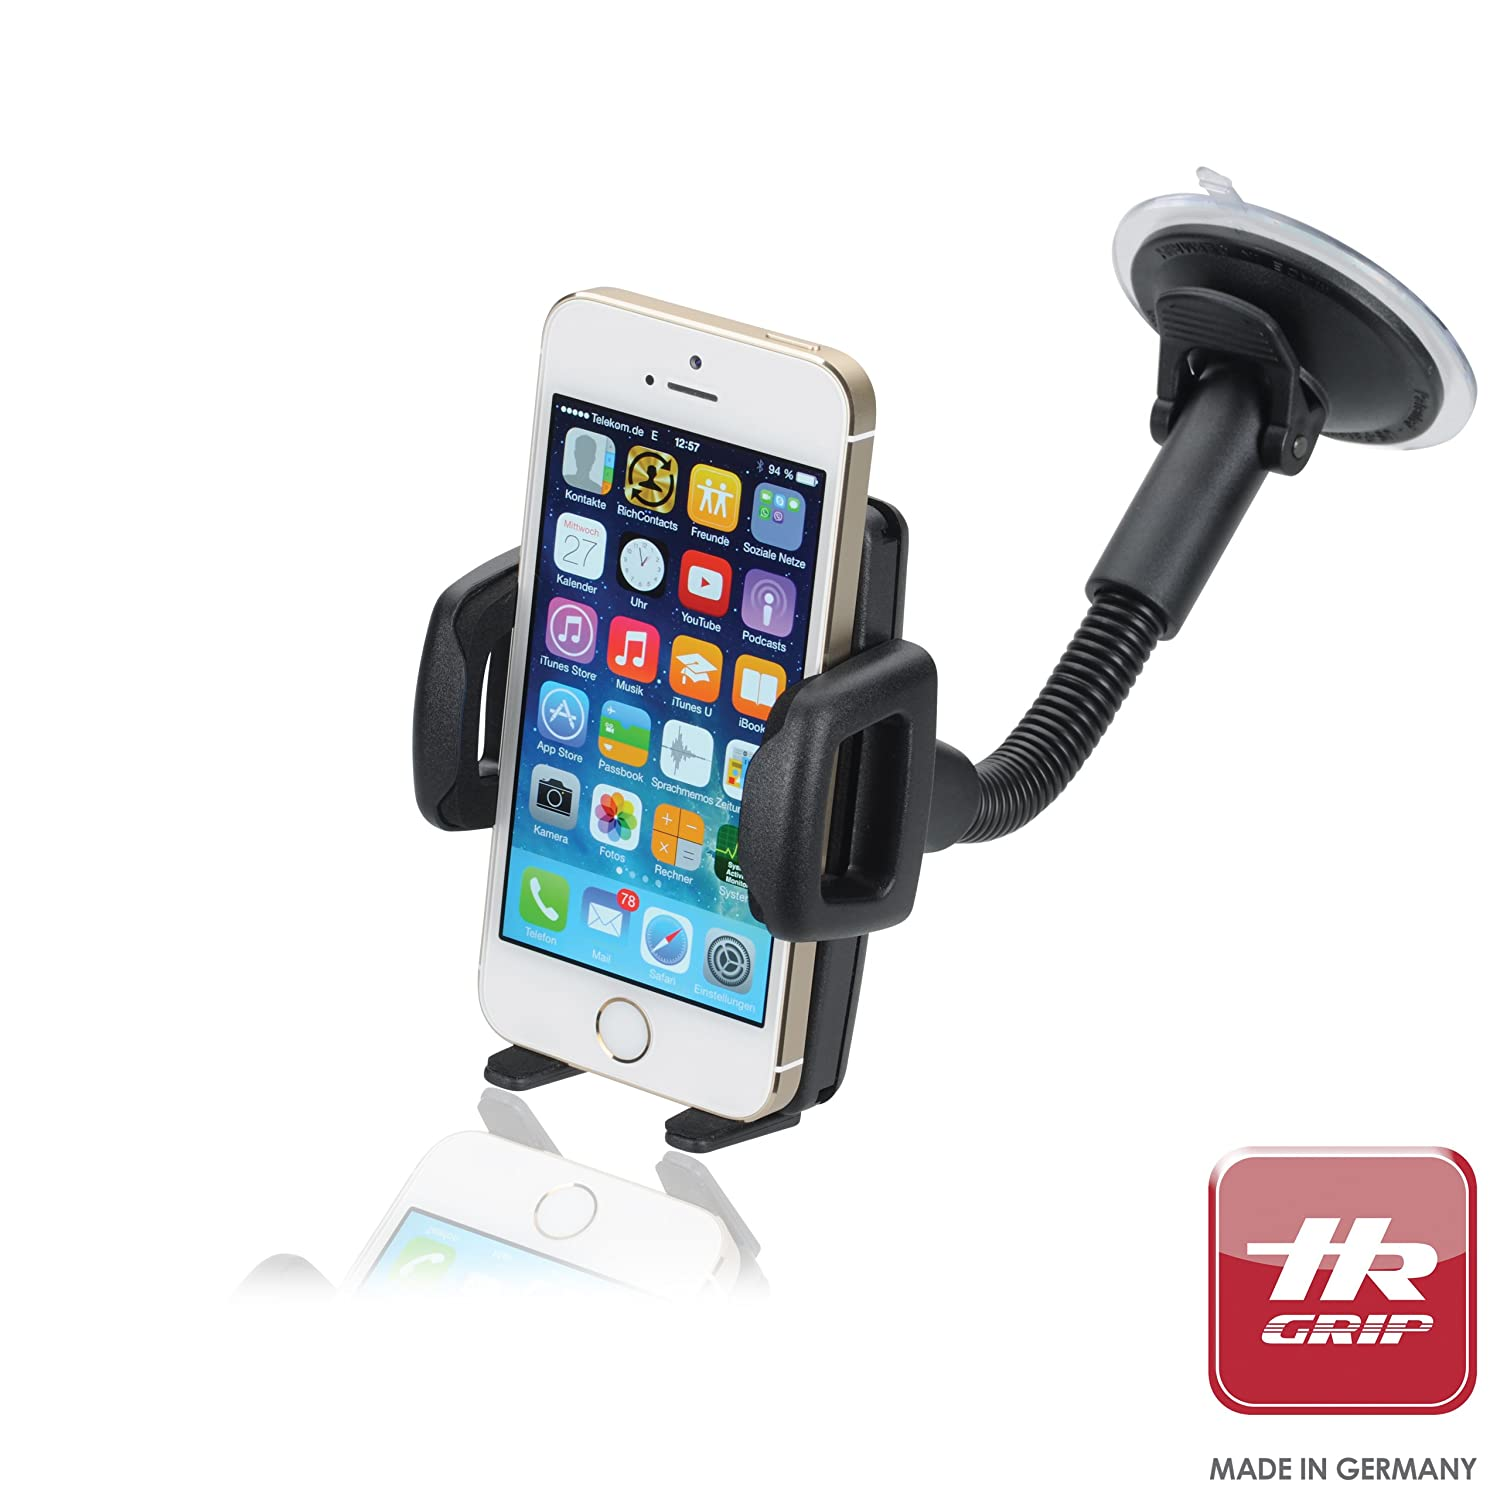 """HR Grip Flex Kit Universal Suction Dashboard and Windsheild Car Mount Holder for iPhone 5S/5C/5/4S/4, Samsung Galaxy S4/S3, most 5"""" Smartphones and MP3 Players"""